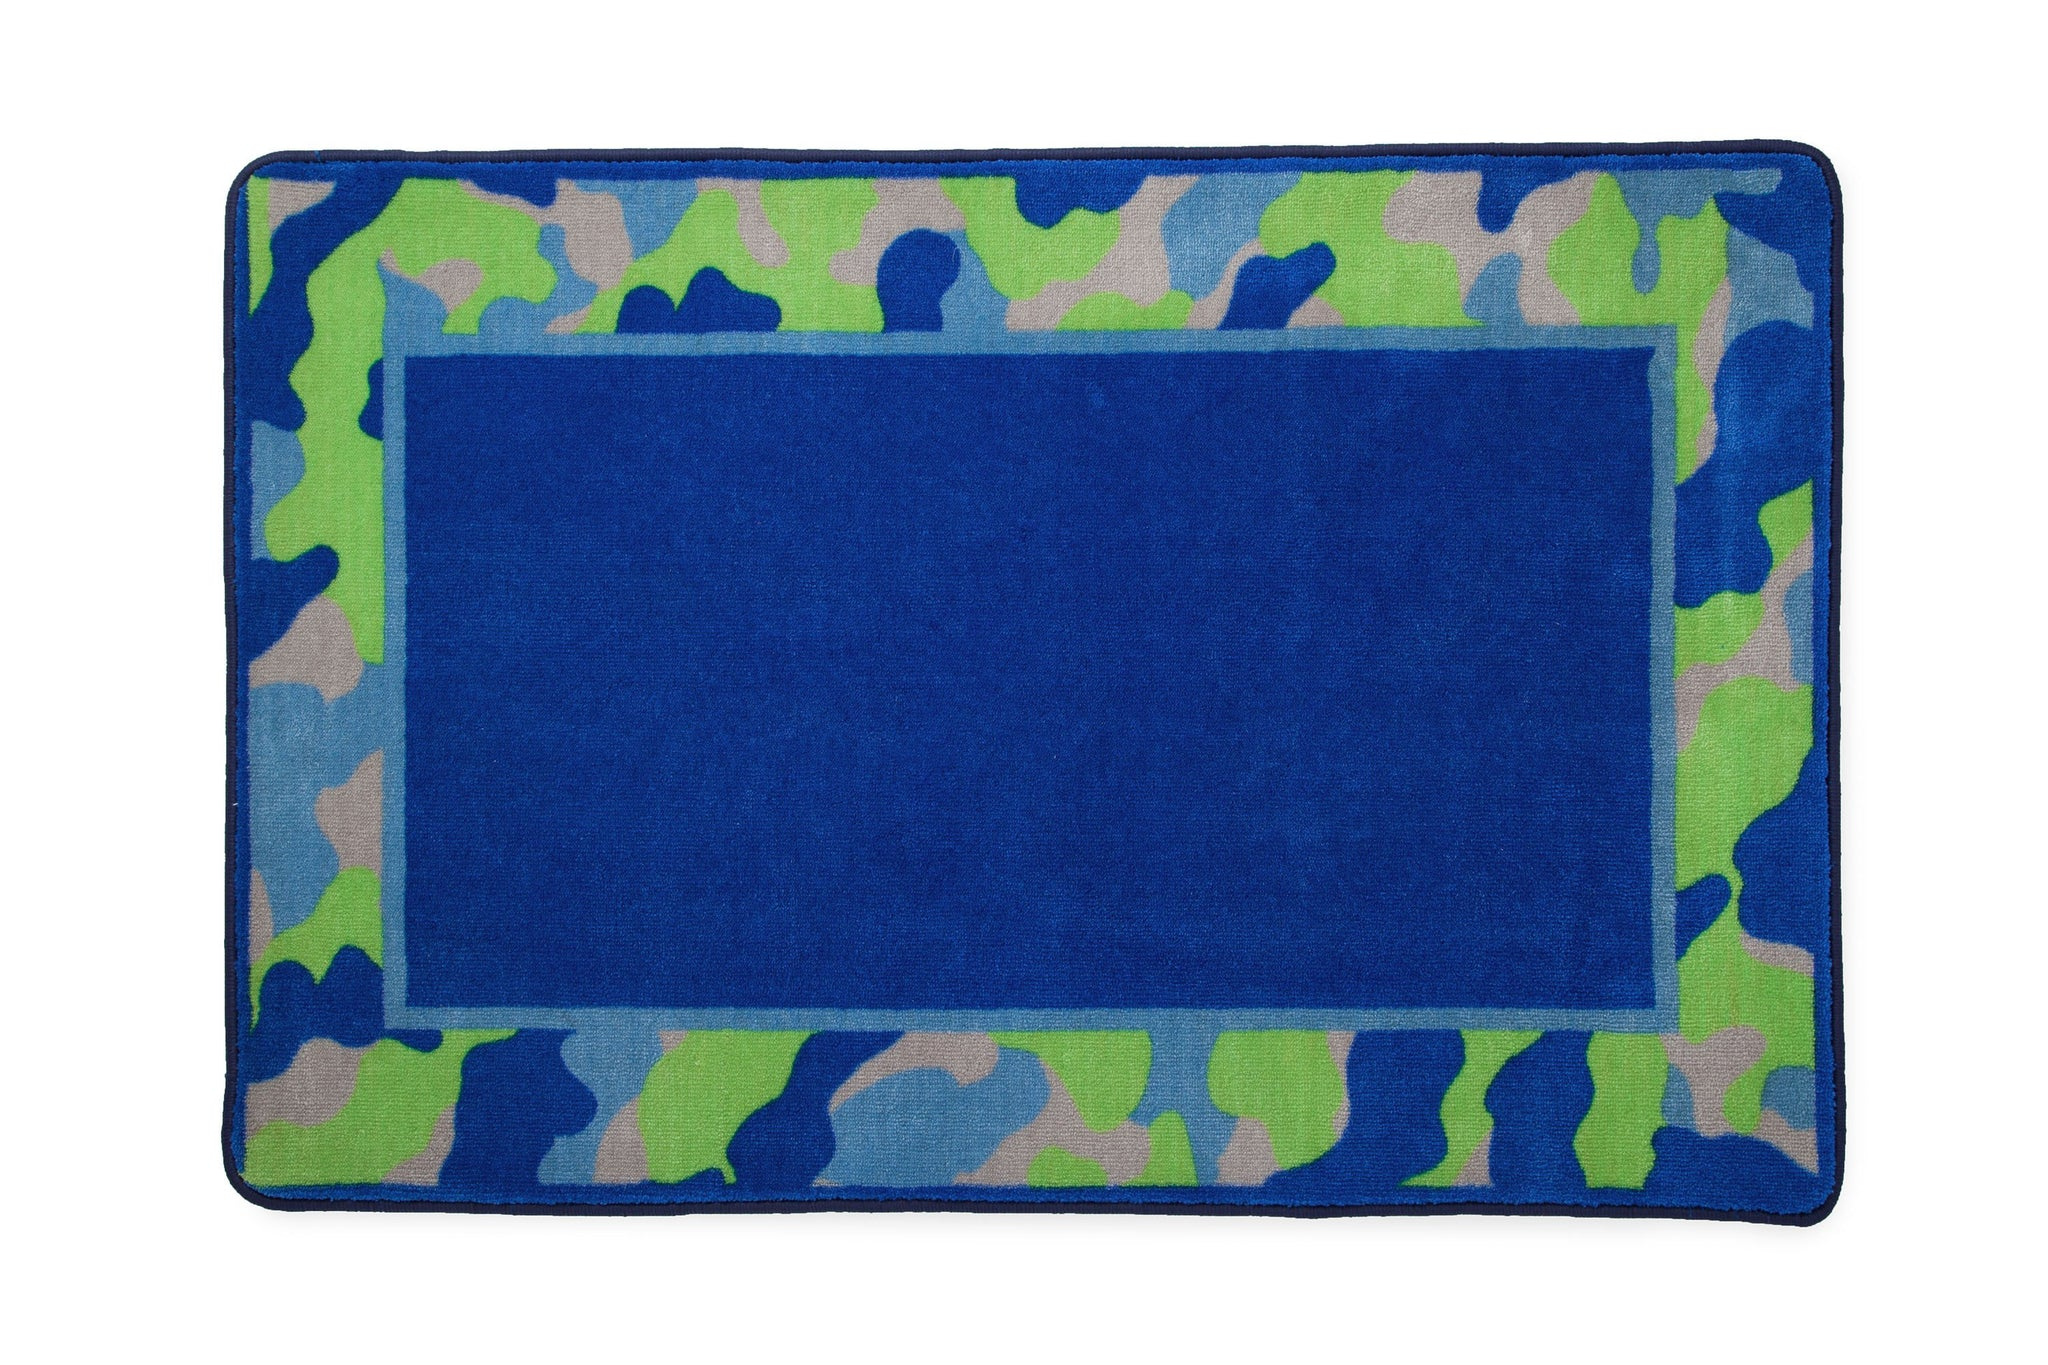 Boys Soft Kids Area Rug, Blue & Green Camo (2202) c2c